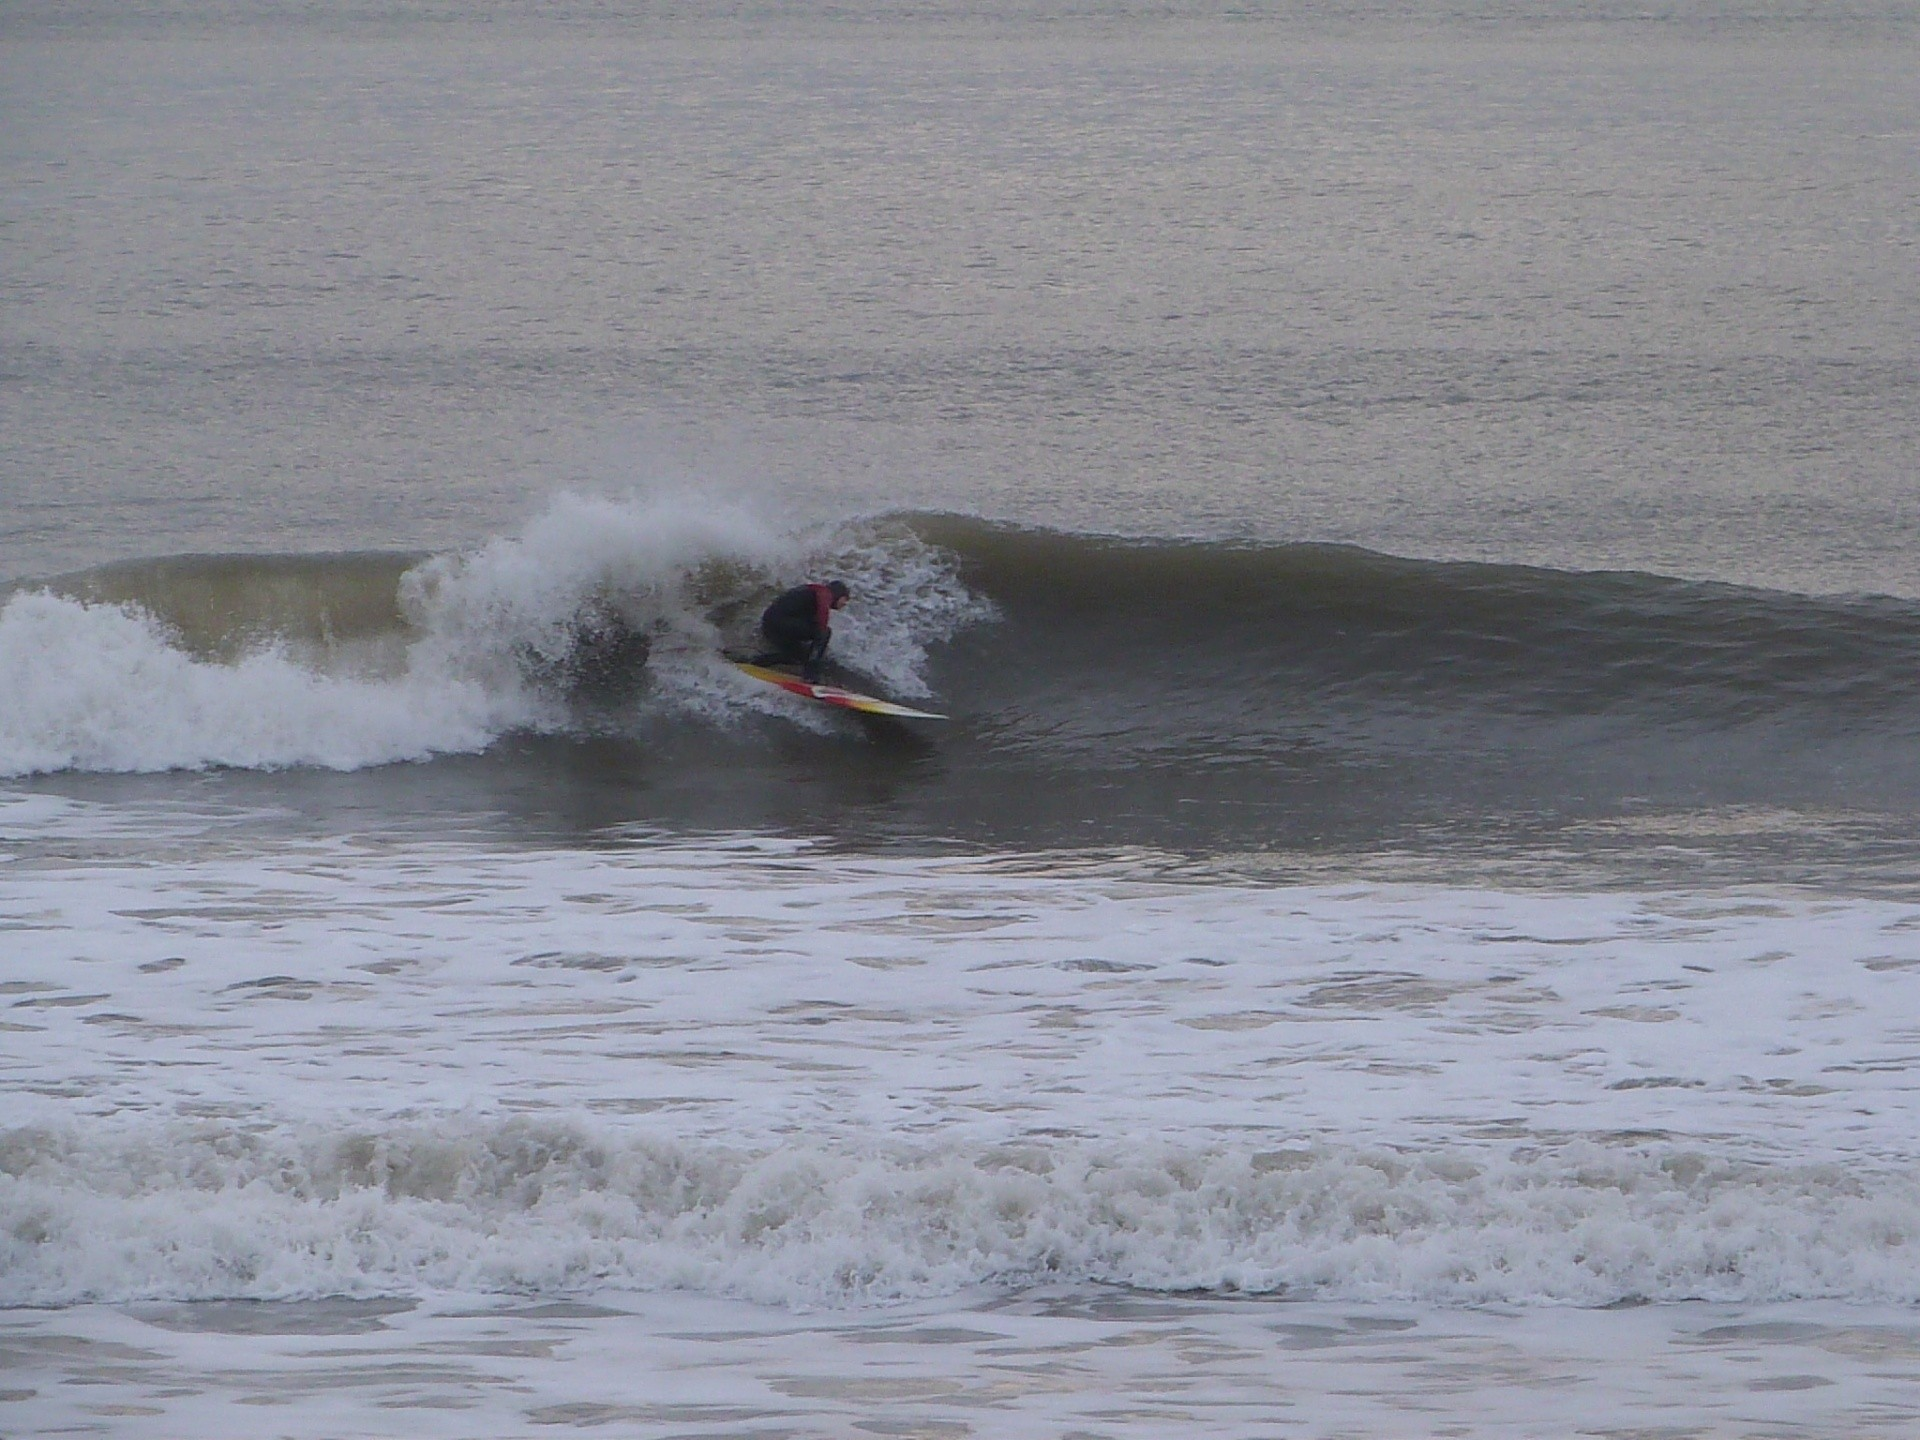 crapsurfer 's photo of Aberavon